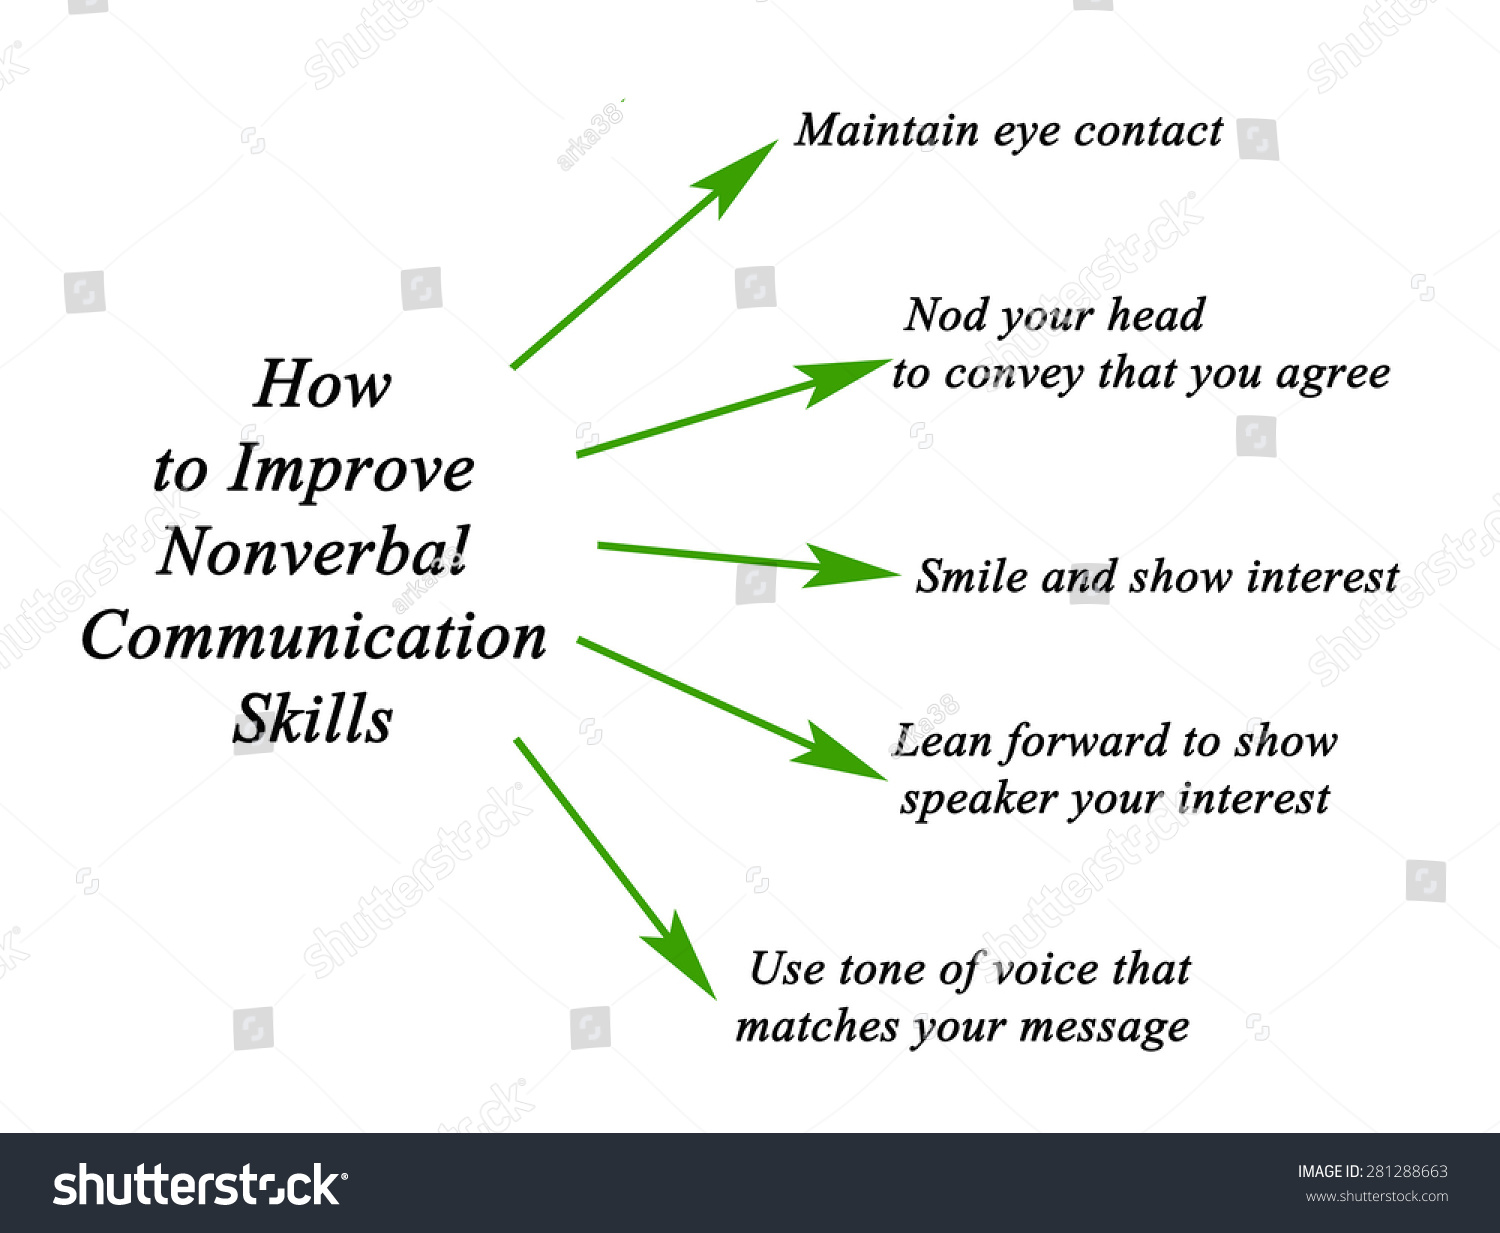 Ways to Nonverbal Communication